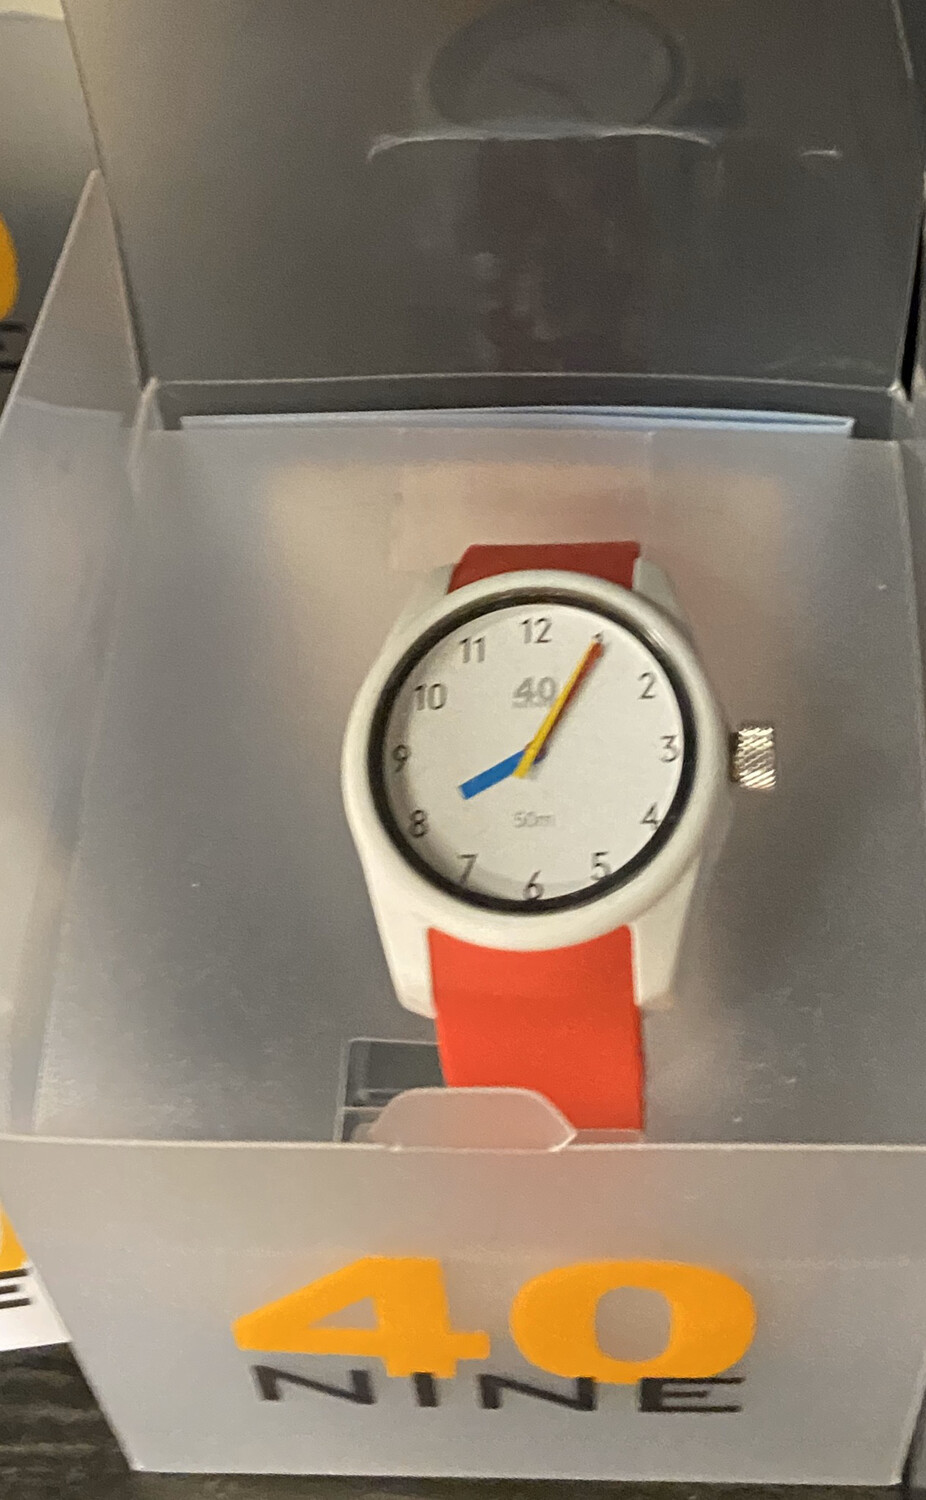 Fun Color Watches 2 Year Warranty Japanese Quartz Tap To Pick Your Color